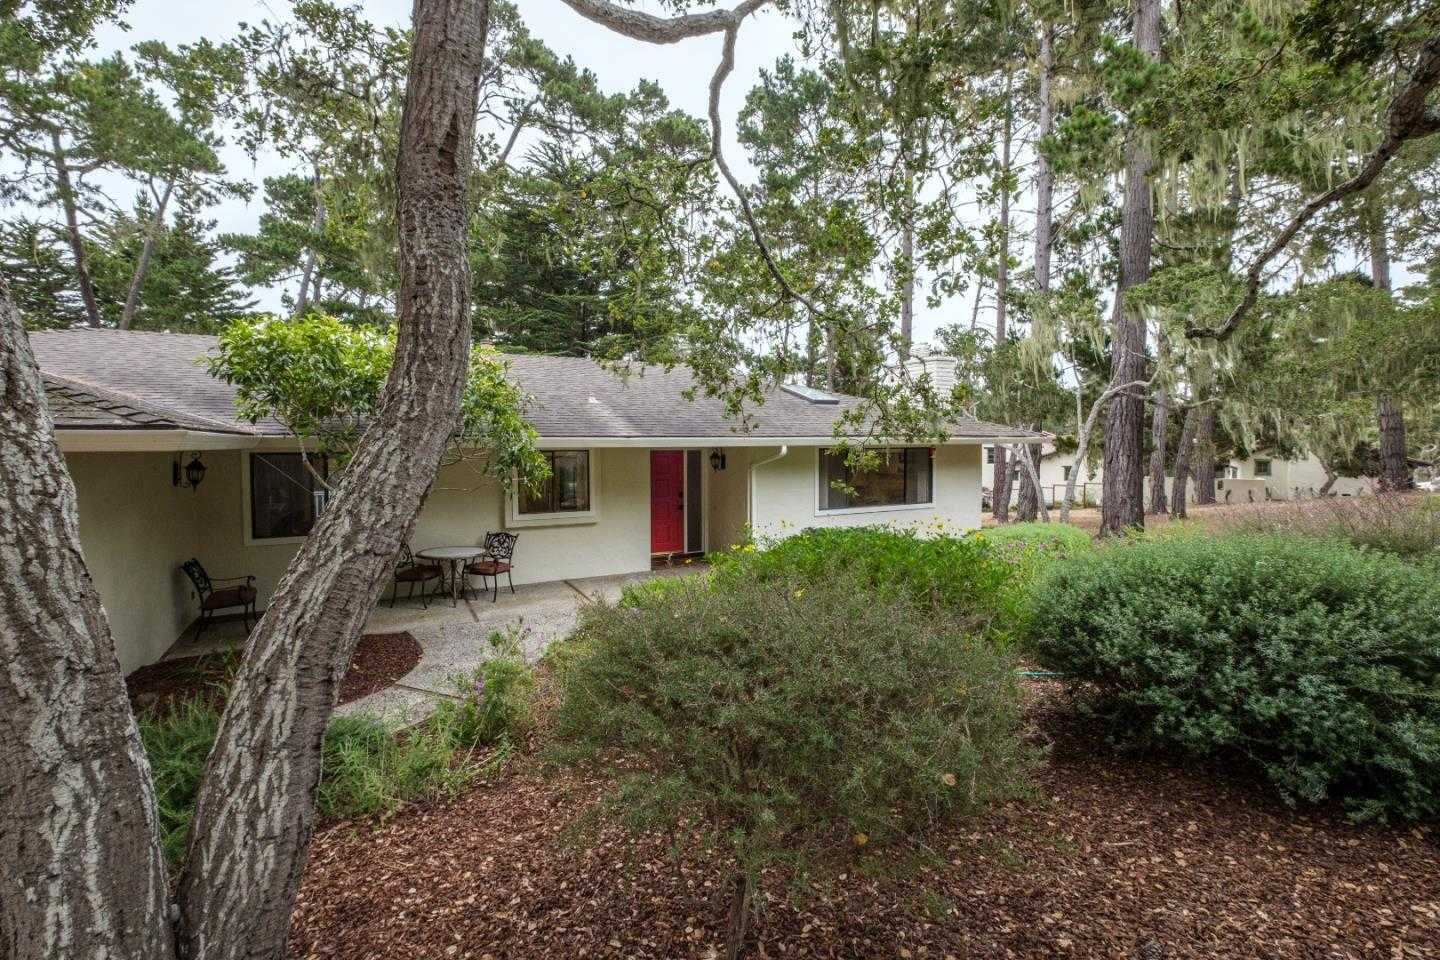 $1,265,000 - 2Br/2Ba -  for Sale in Pebble Beach